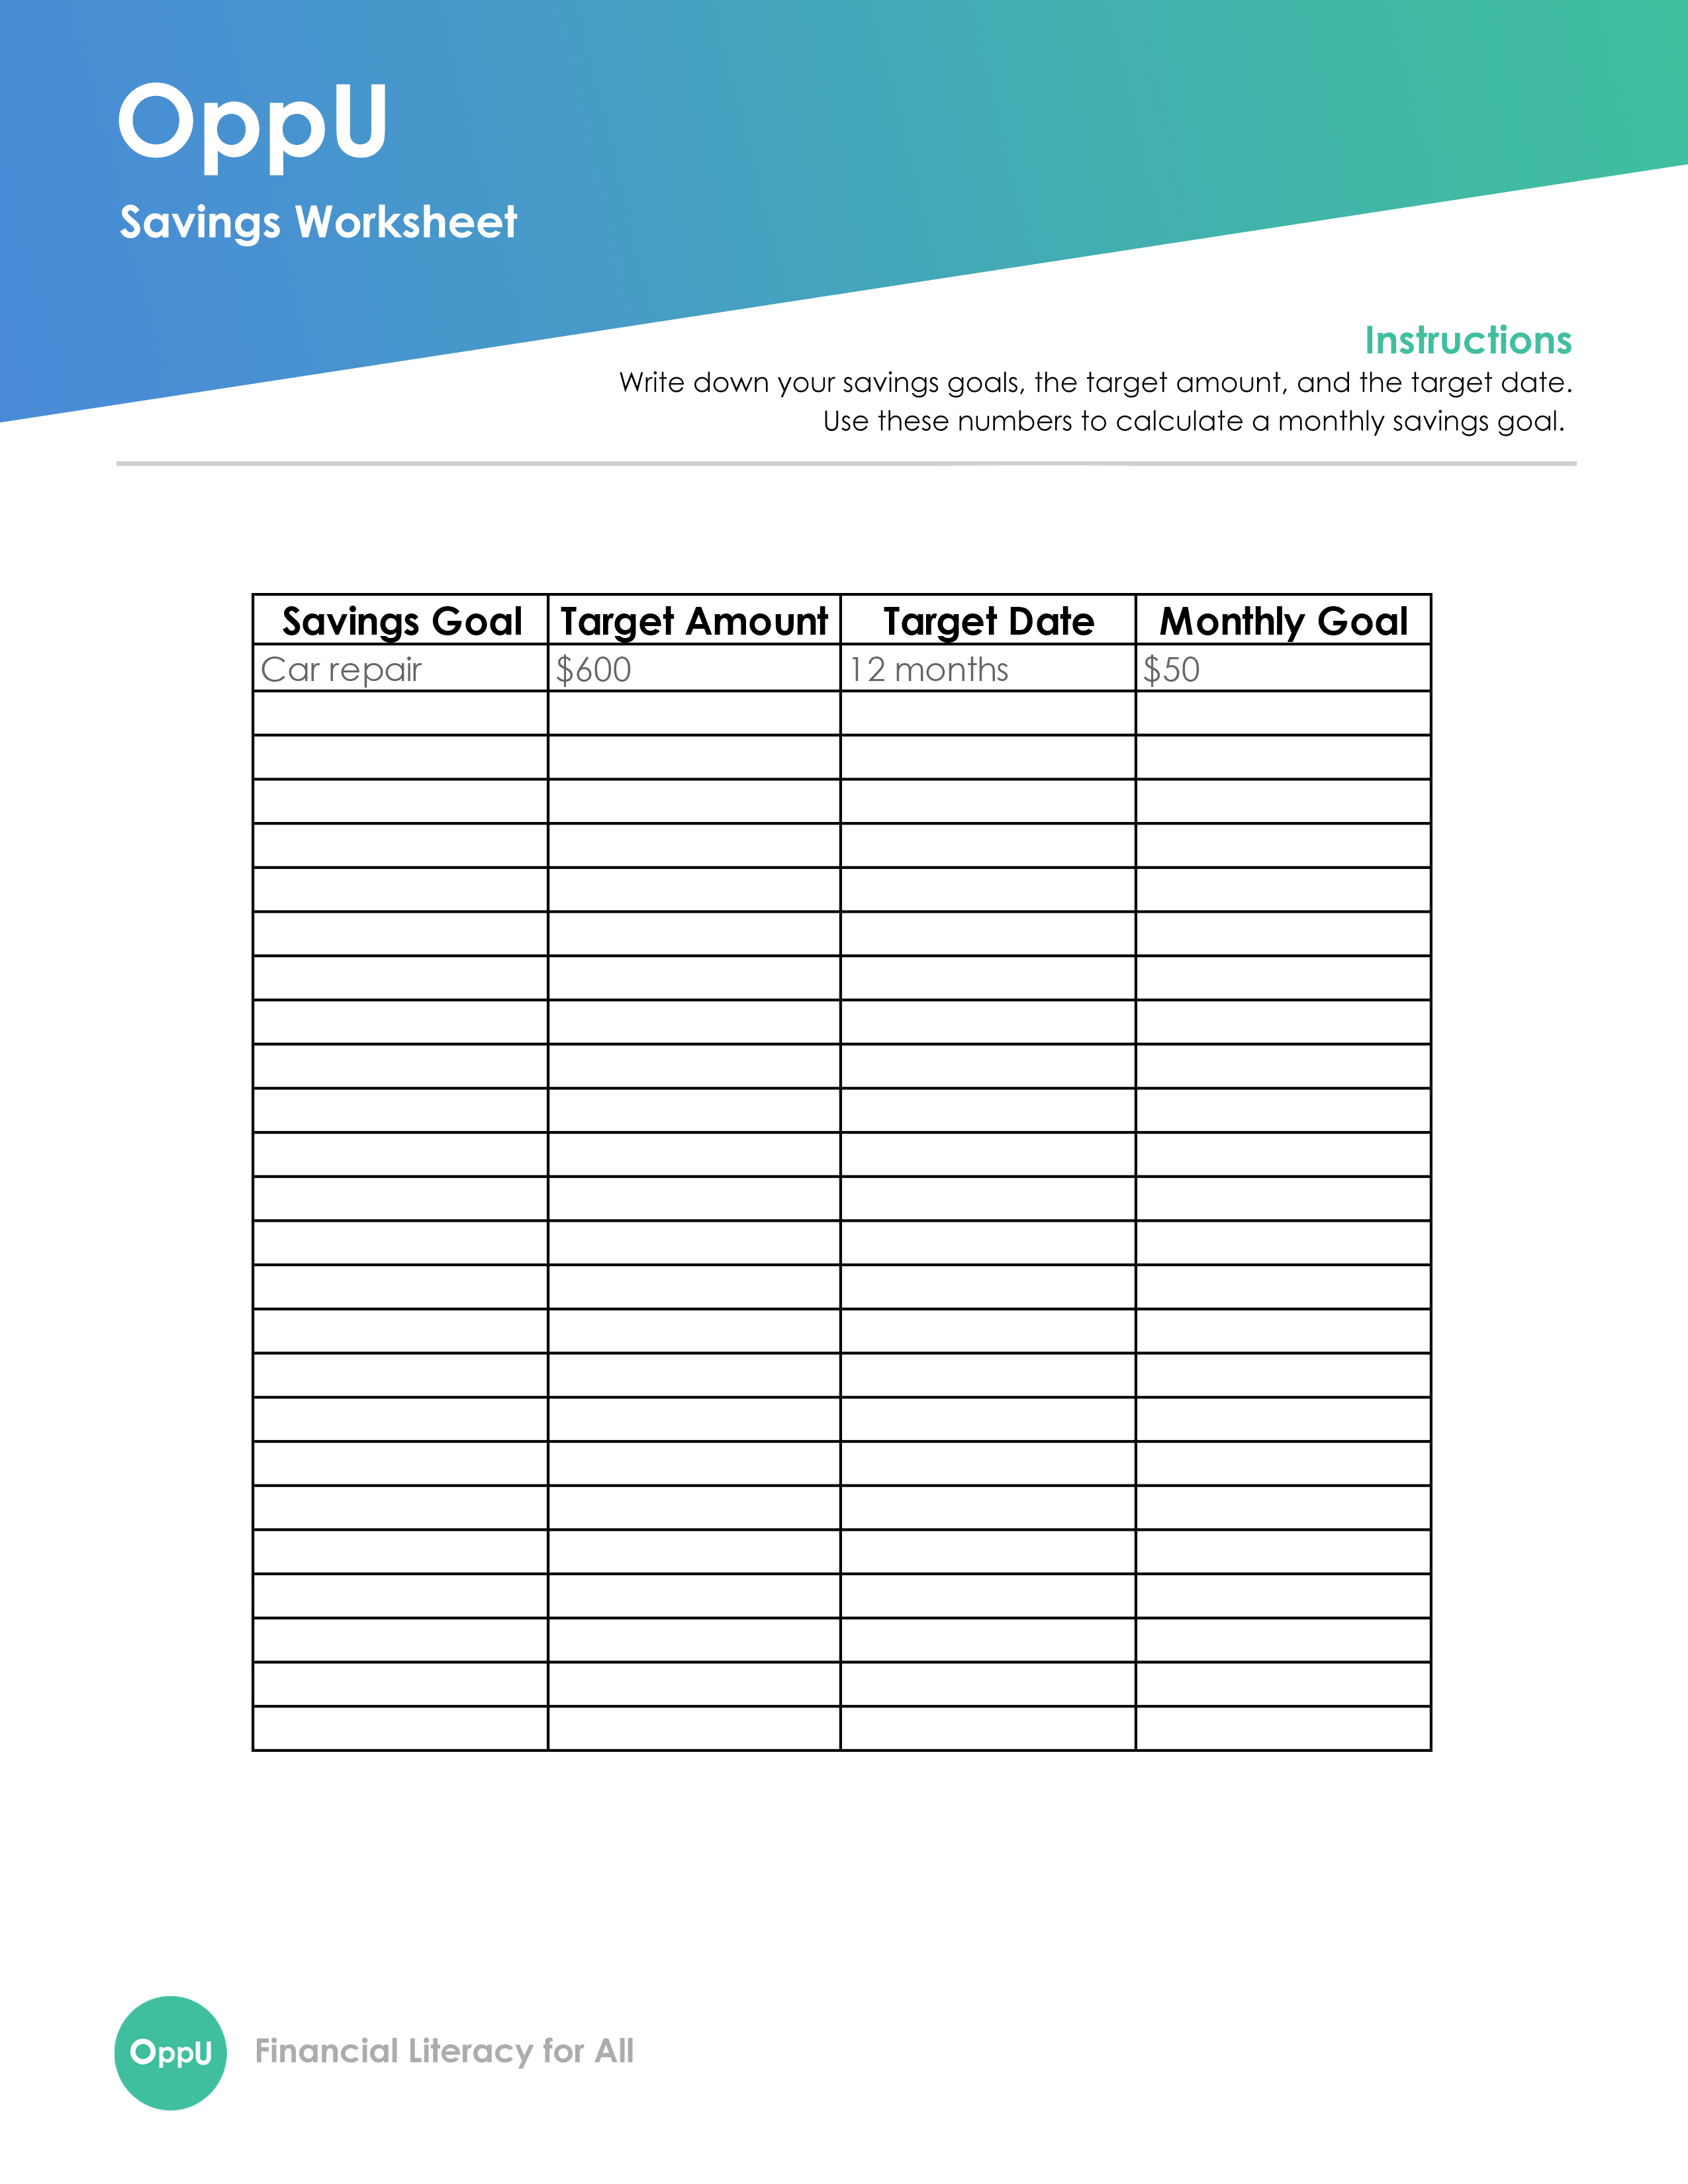 OppU Savings Worksheet